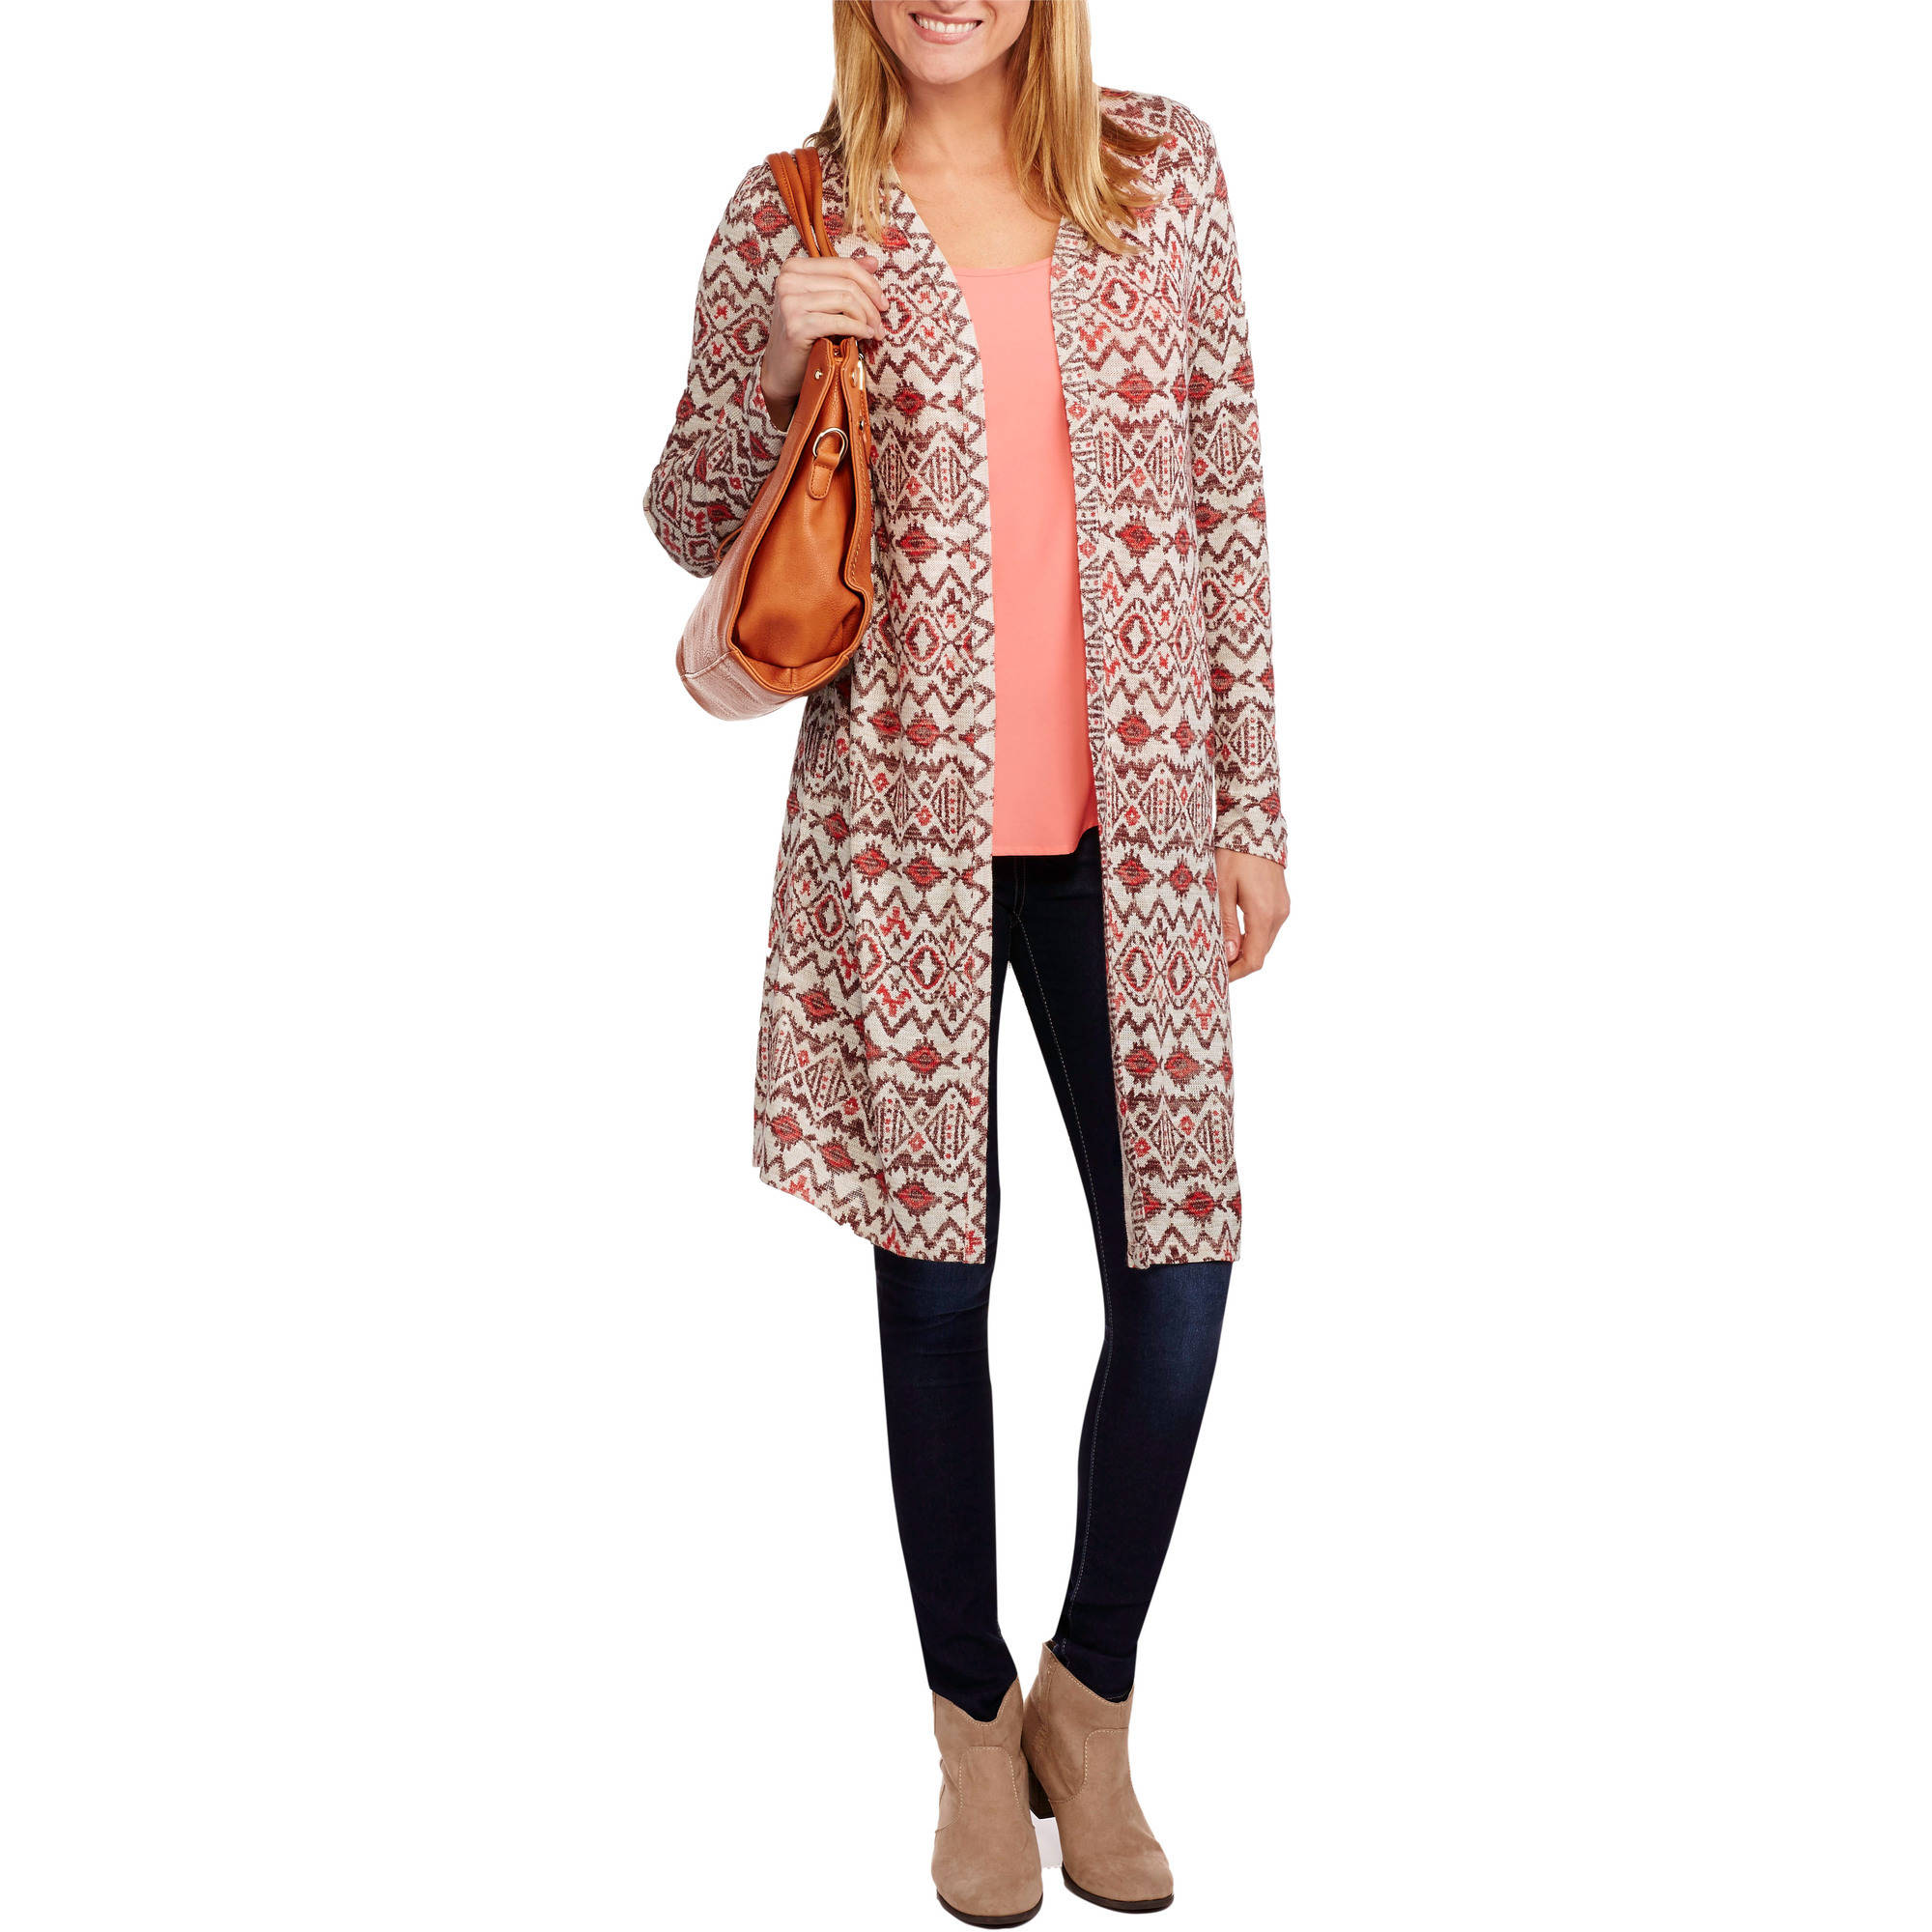 Faded Glory Women's Printed Knit Duster Cardigan